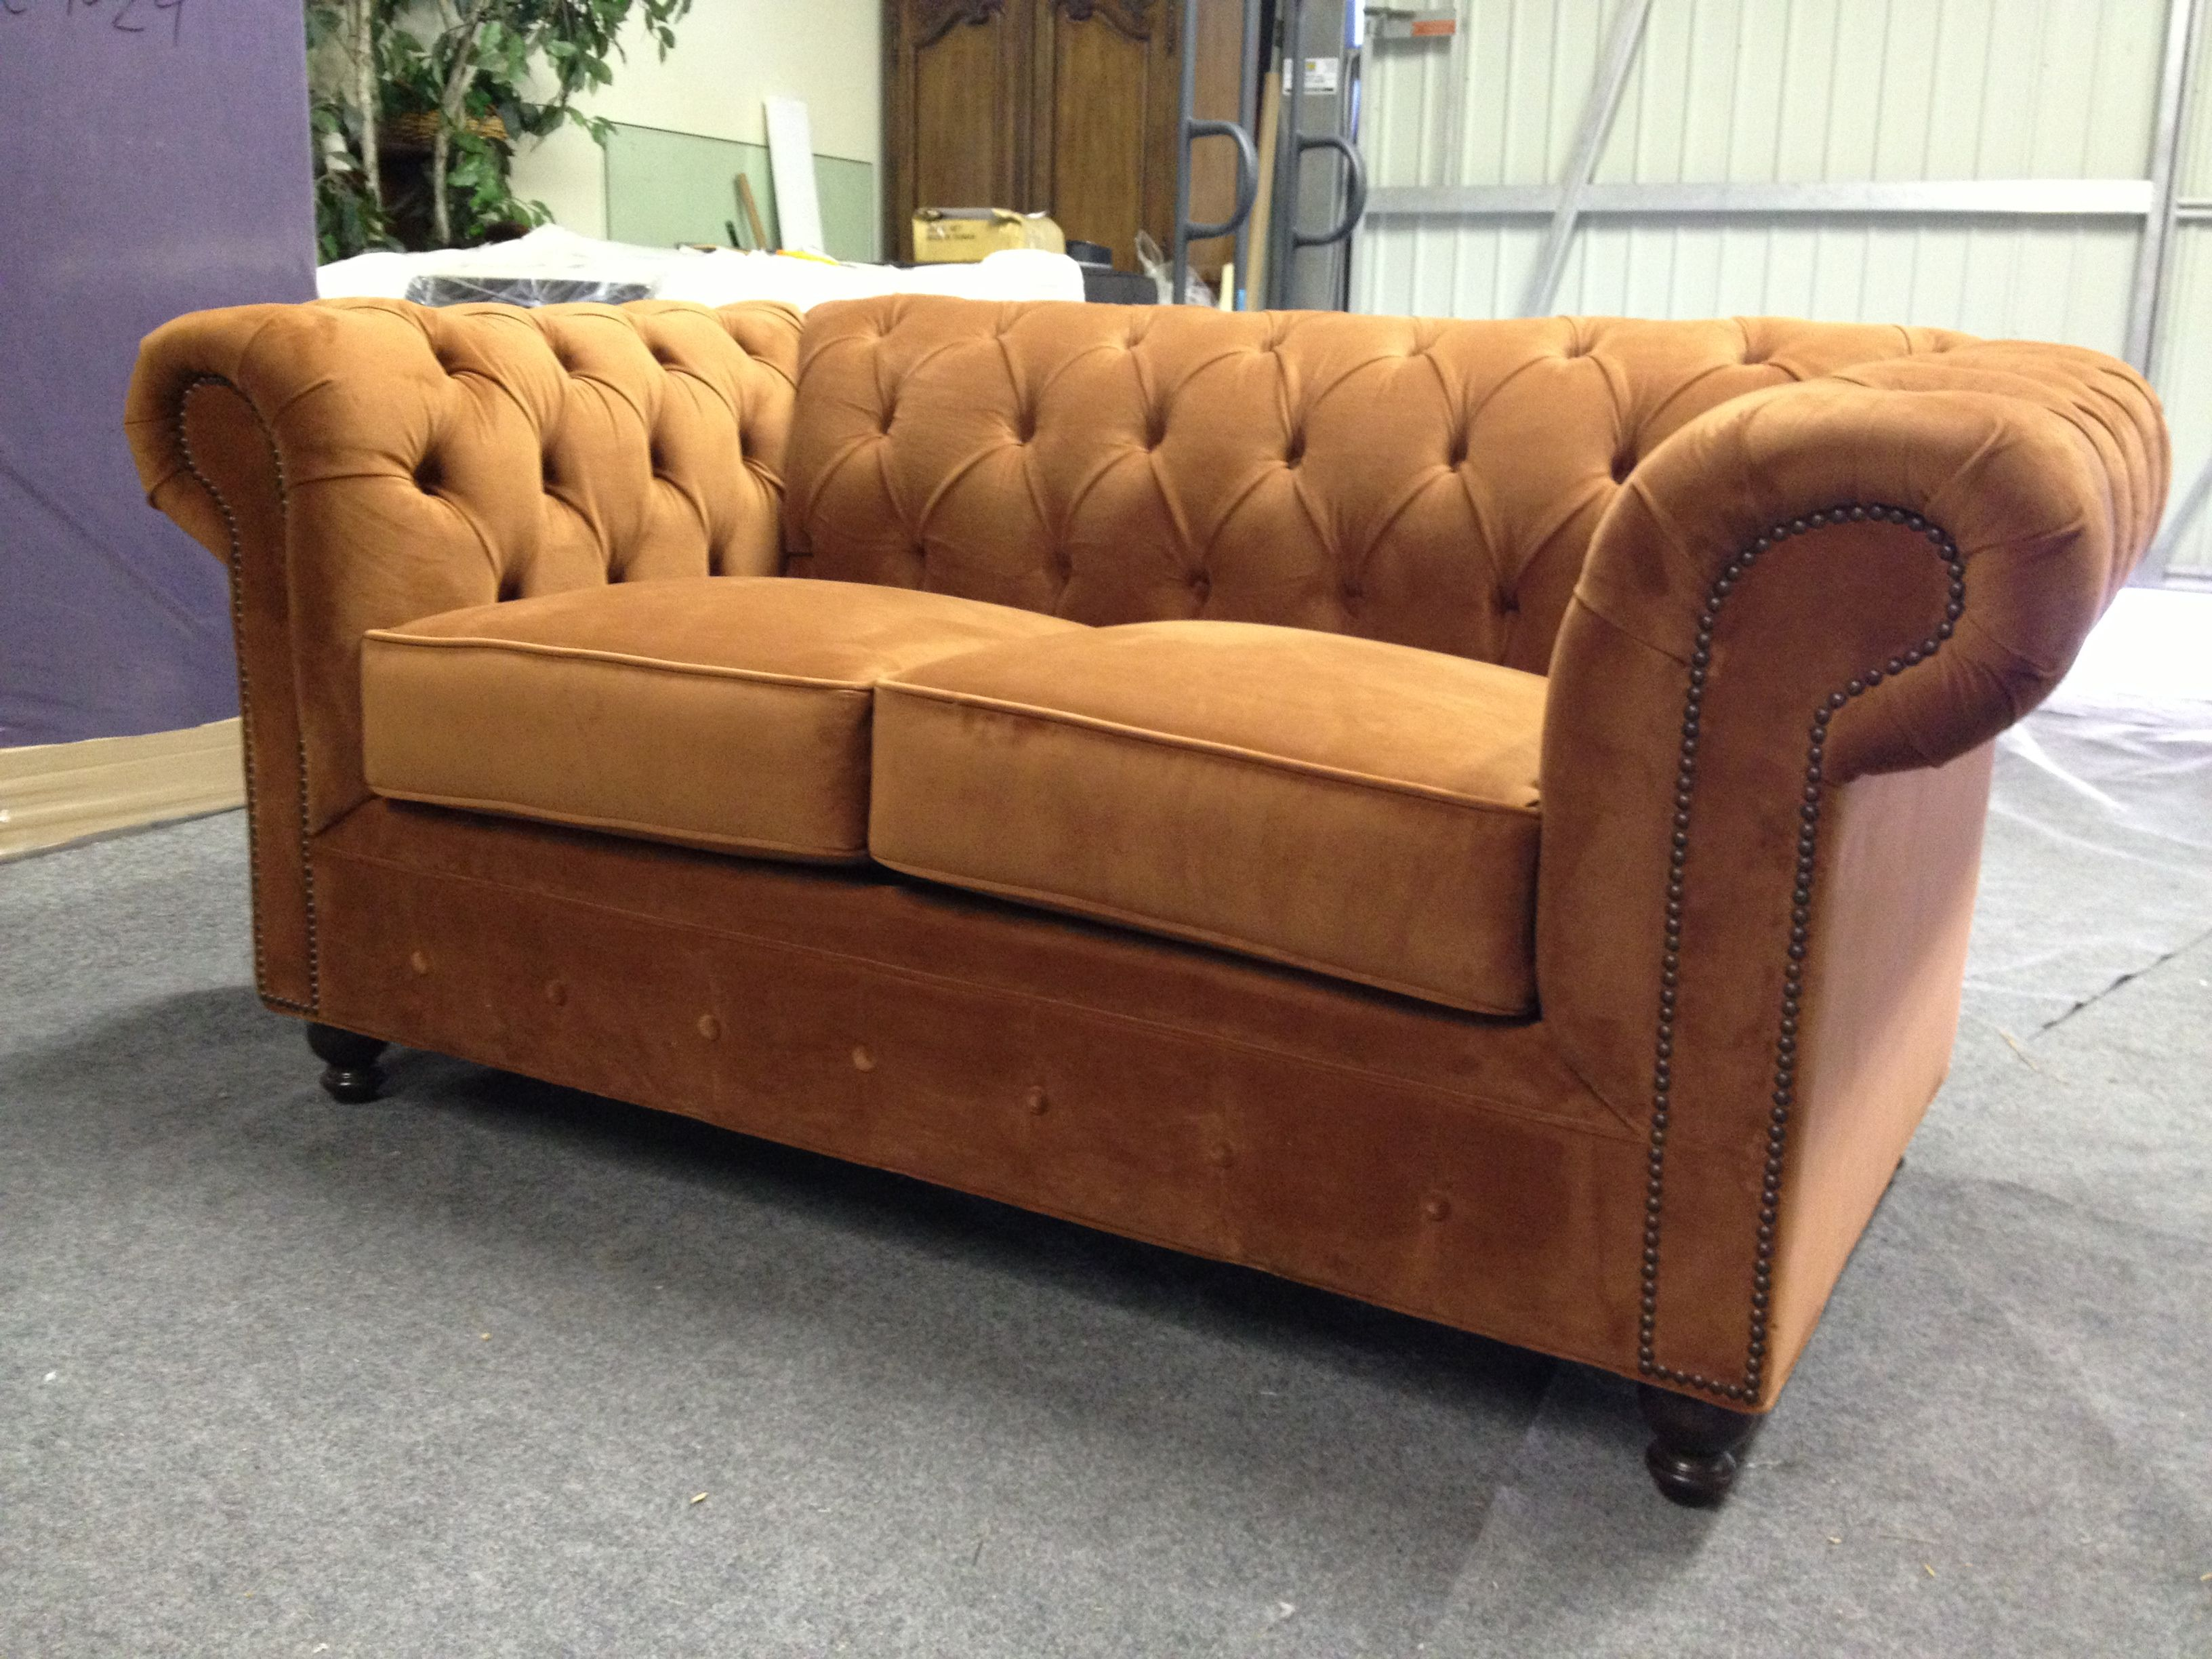 Custom Chesterfield Sofa Or Sectional Leather Fabric Ships Nationwide